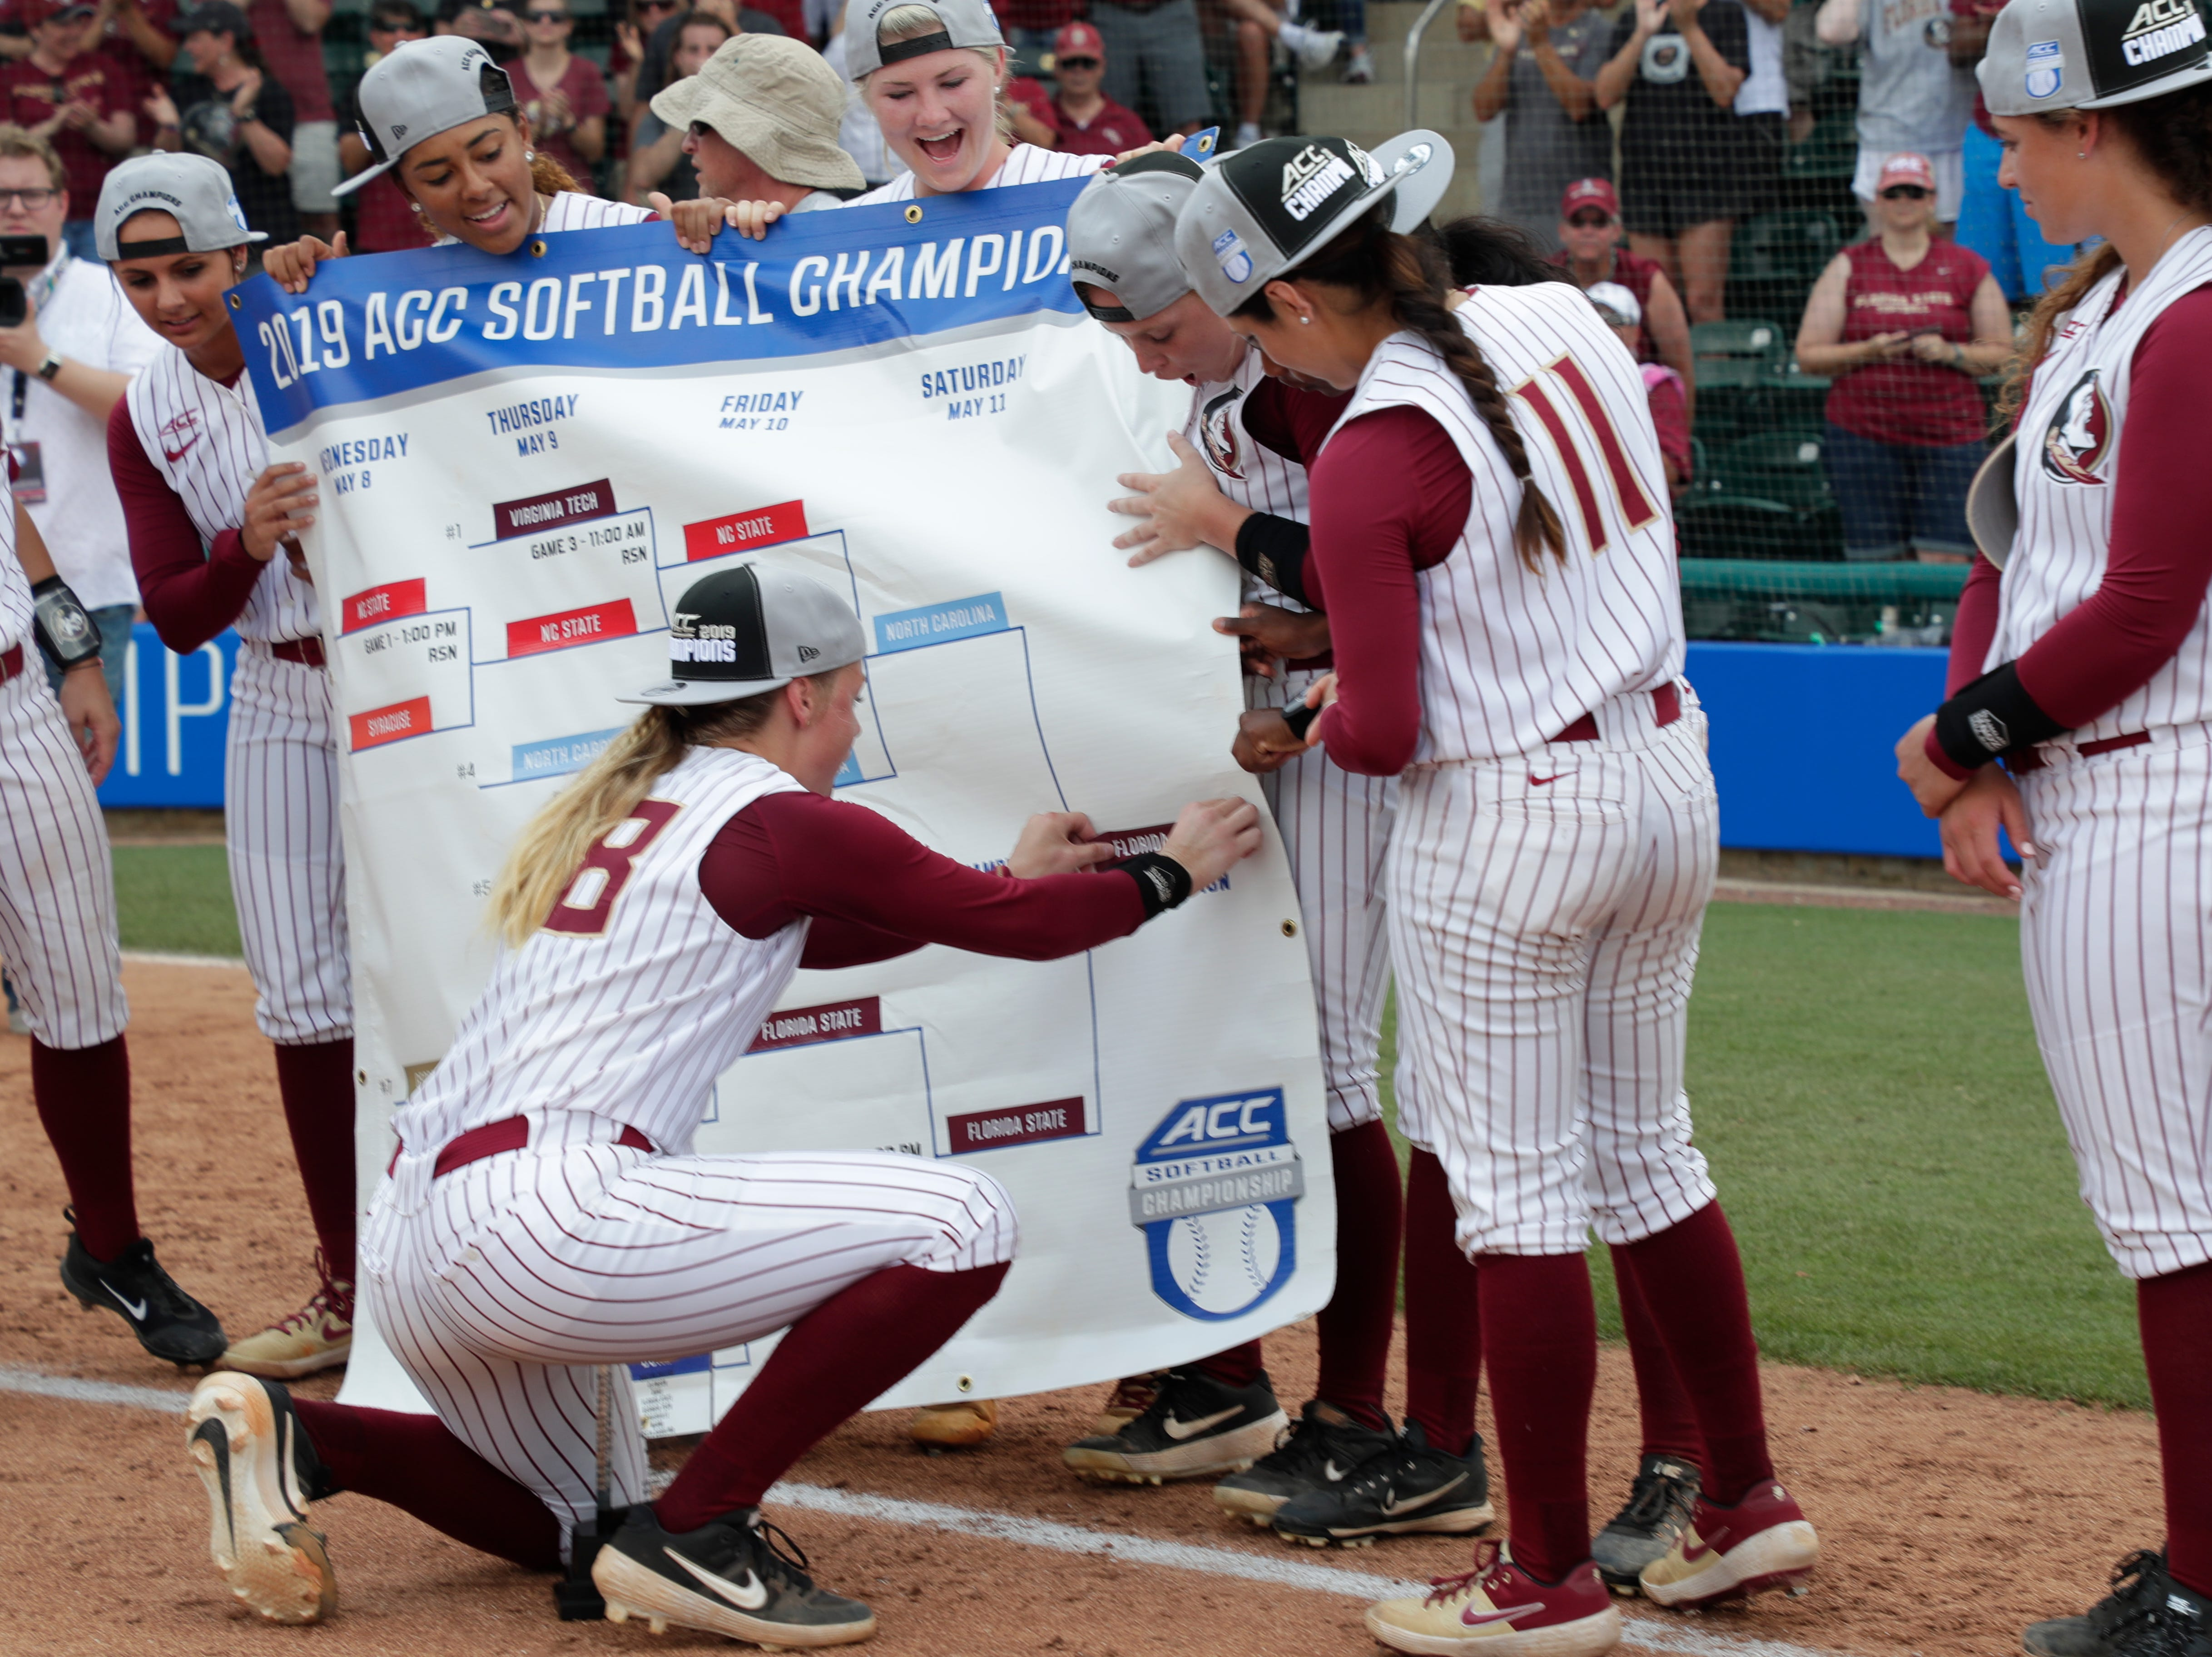 Florida State Seminoles starting pitcher/relief pitcher Meghan King (48) places a sticker showing that Florida State won. The Florida State Seminoles celebrate their victory over the UNC Tar Heels for the ACC Softball Championship title Saturday, May 11, 2019.